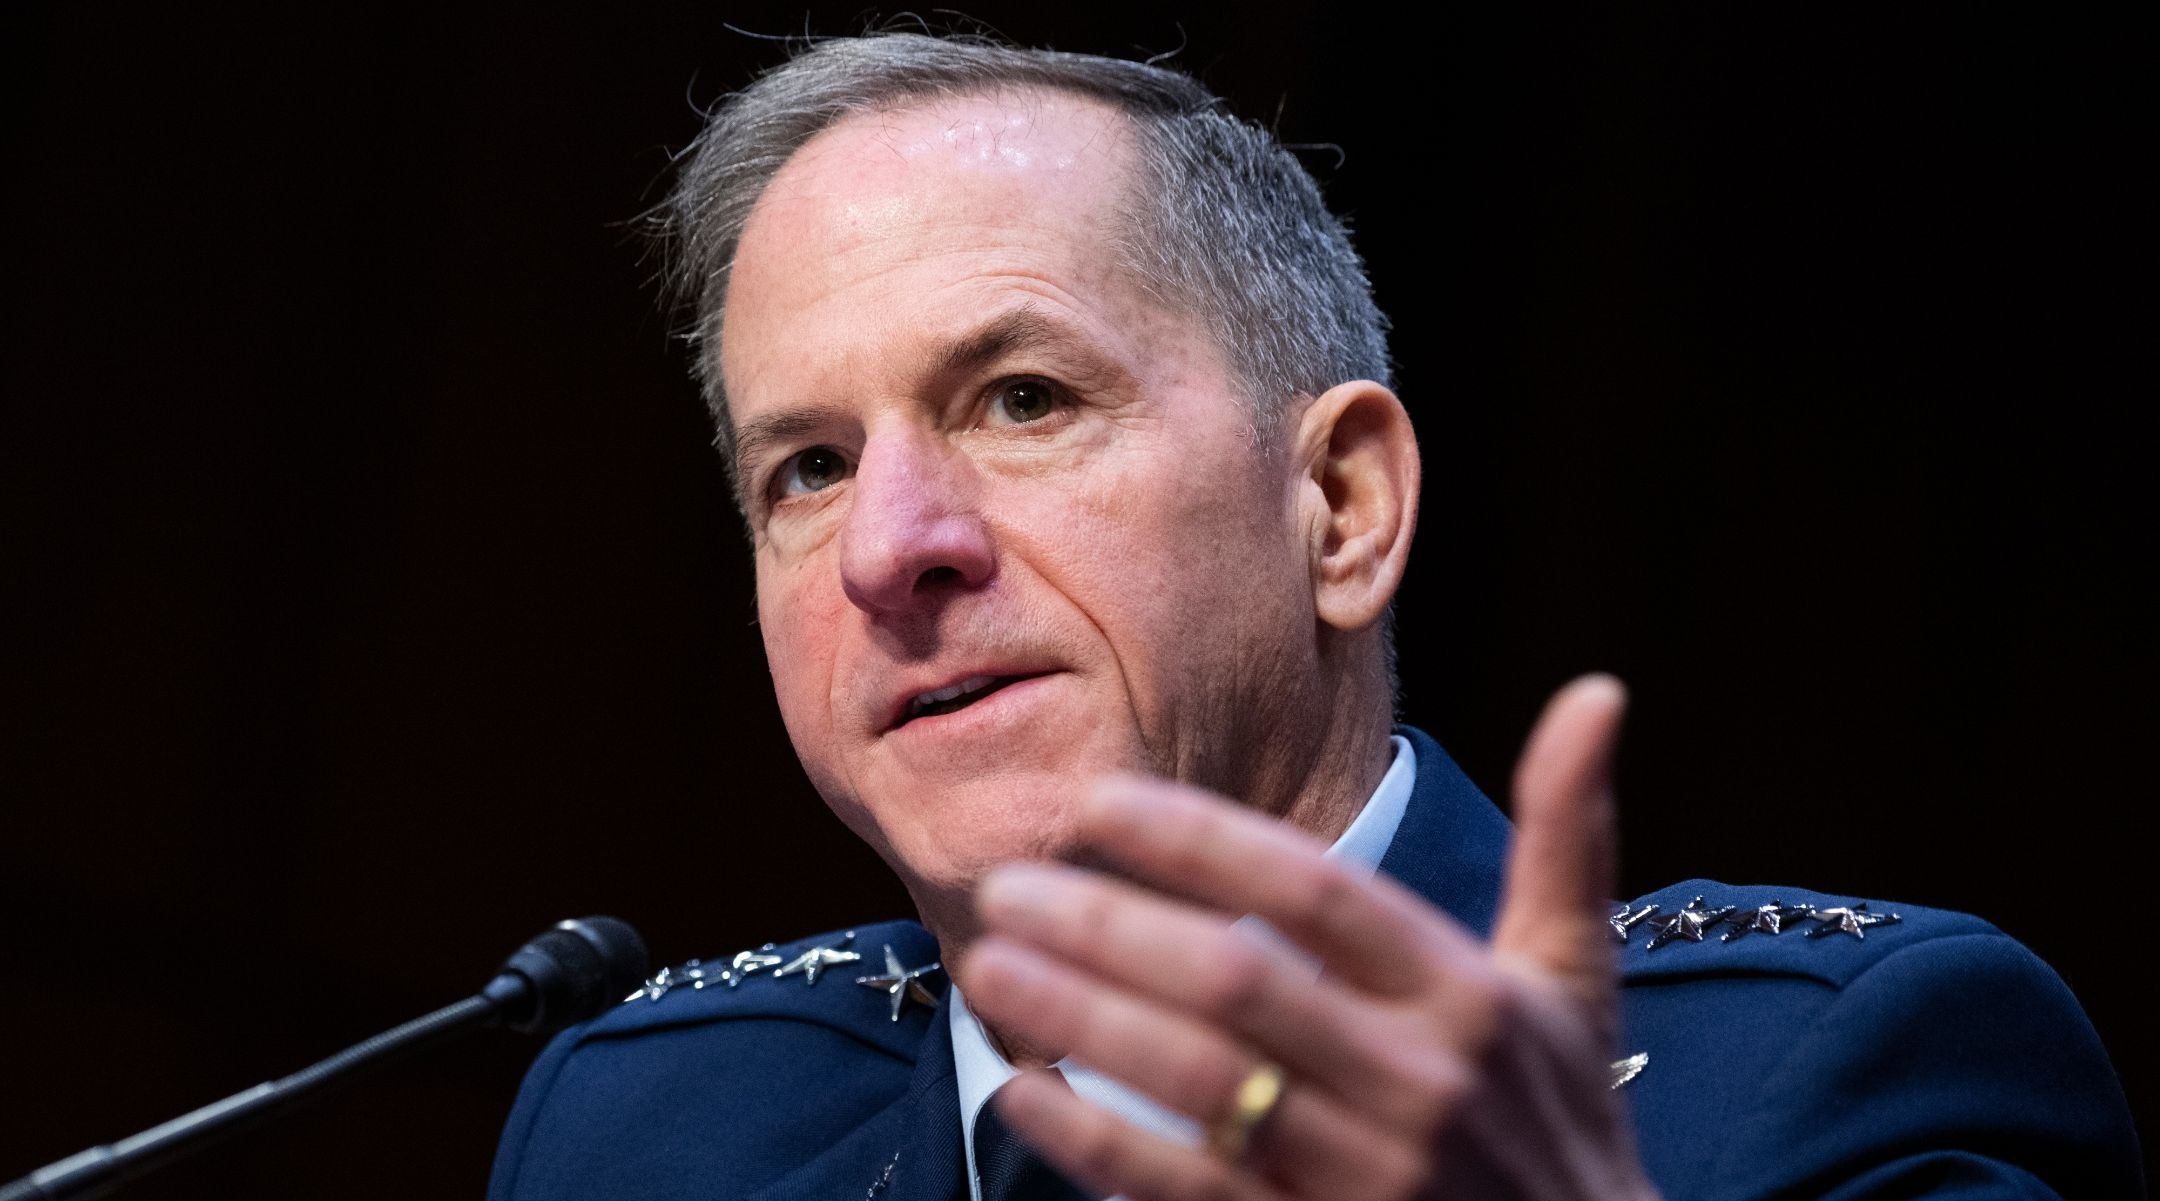 David Goldfein, Jewish US Air Force chief, is stepping down